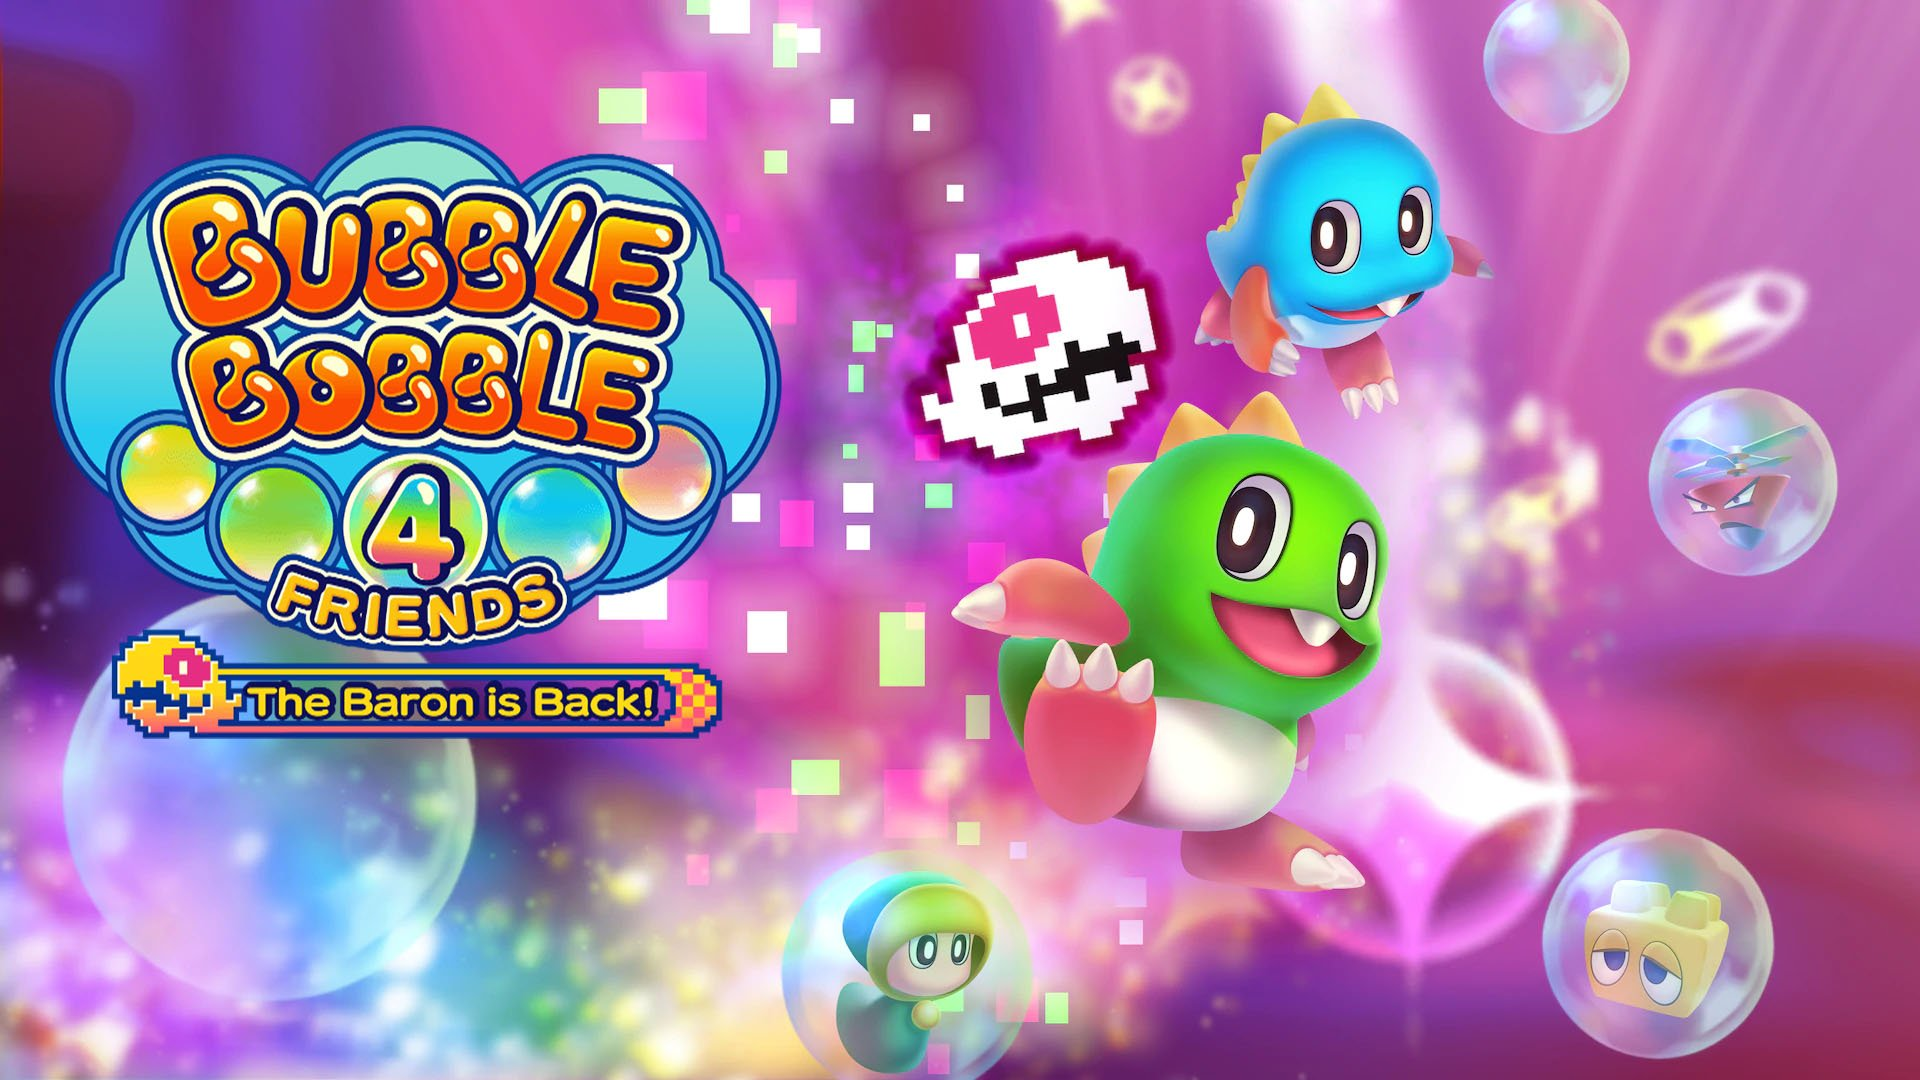 Bubble Bobble 4 Friends The Baron Is Back Fi1